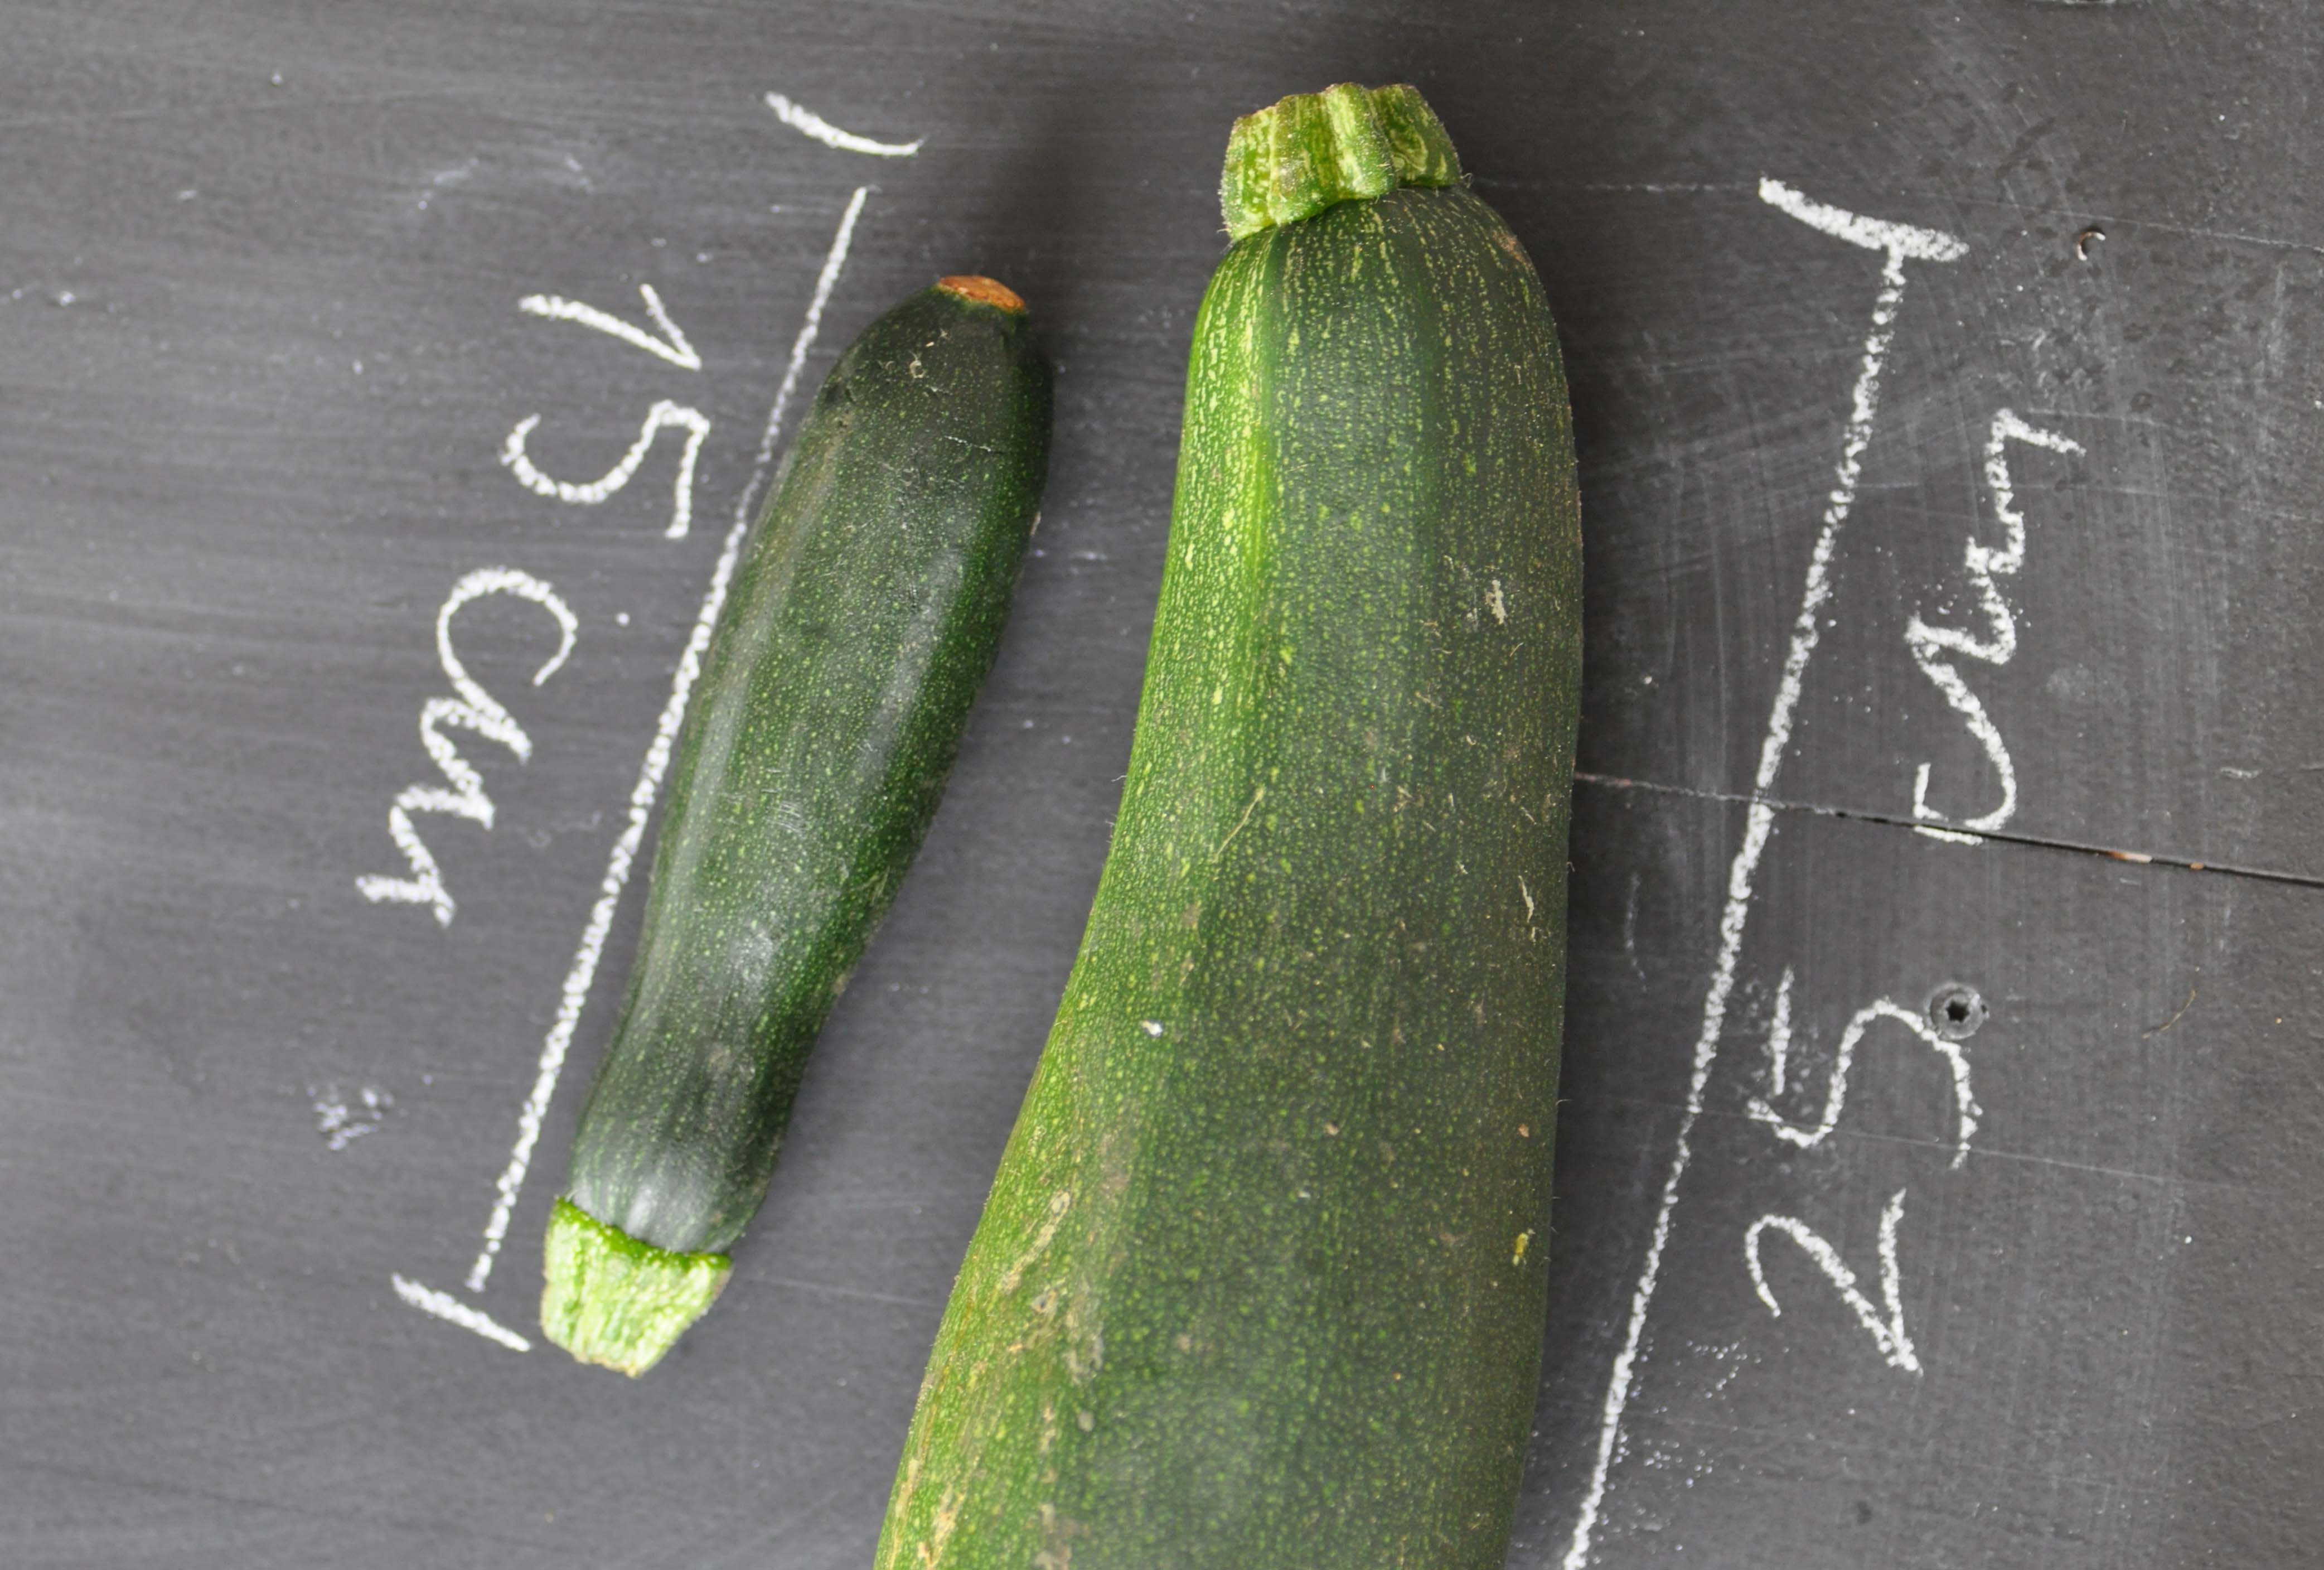 courgette 15 cm_bearbeitet-1